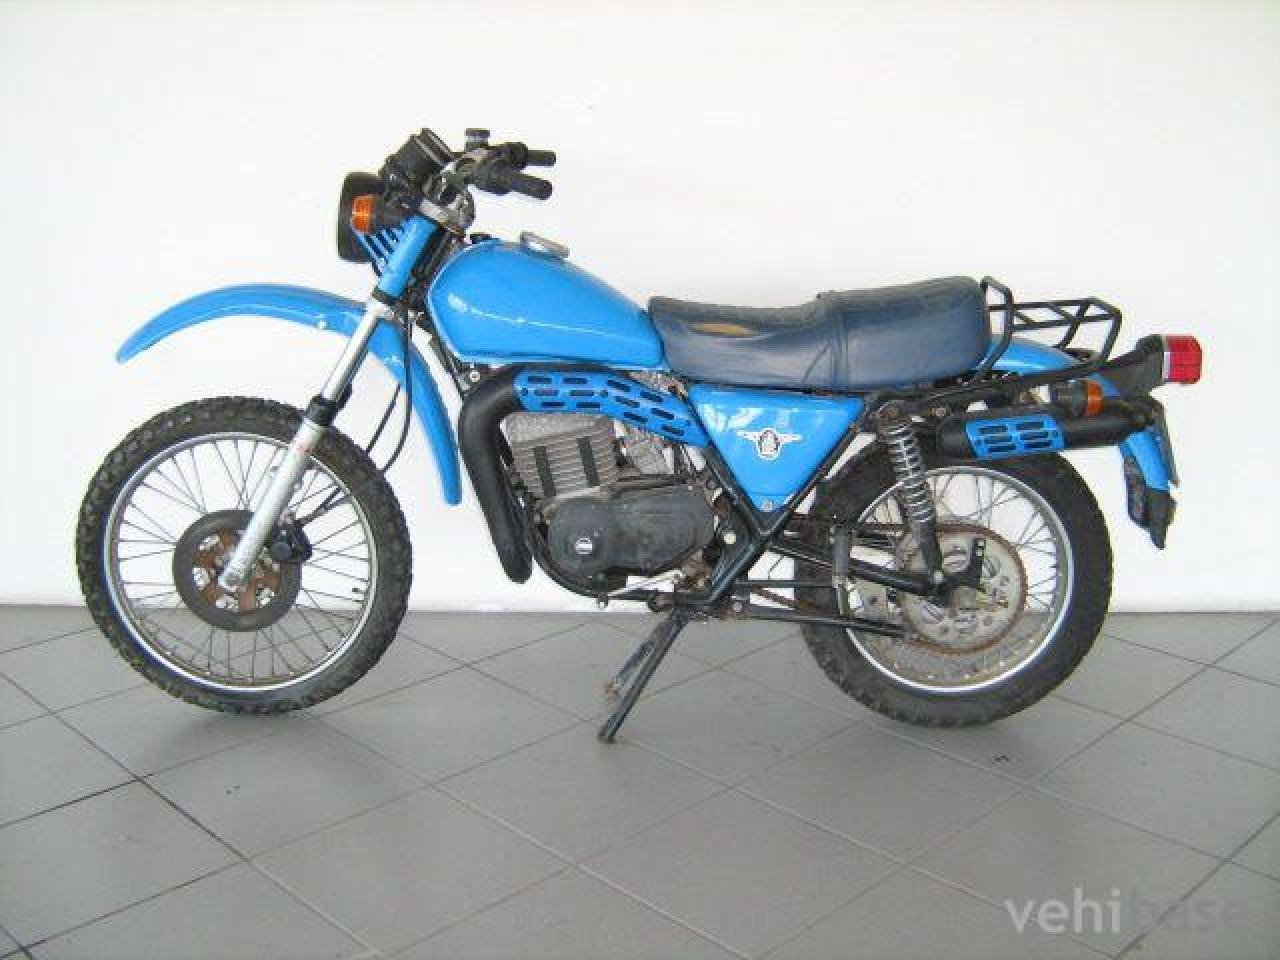 Cagiva SX 250 1983 images #67988